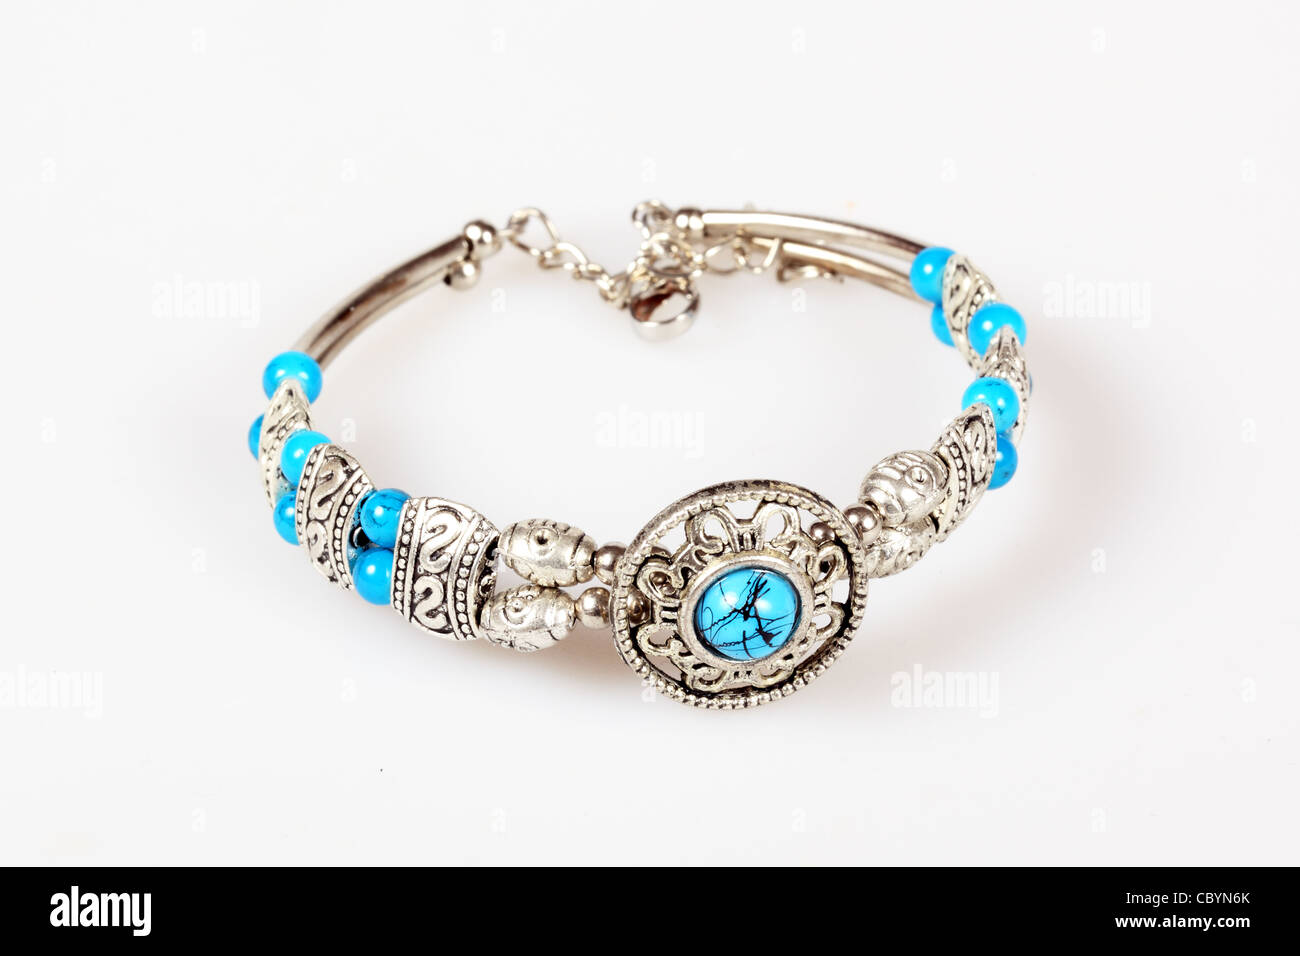 Silver bracelet with turquoise - Stock Image